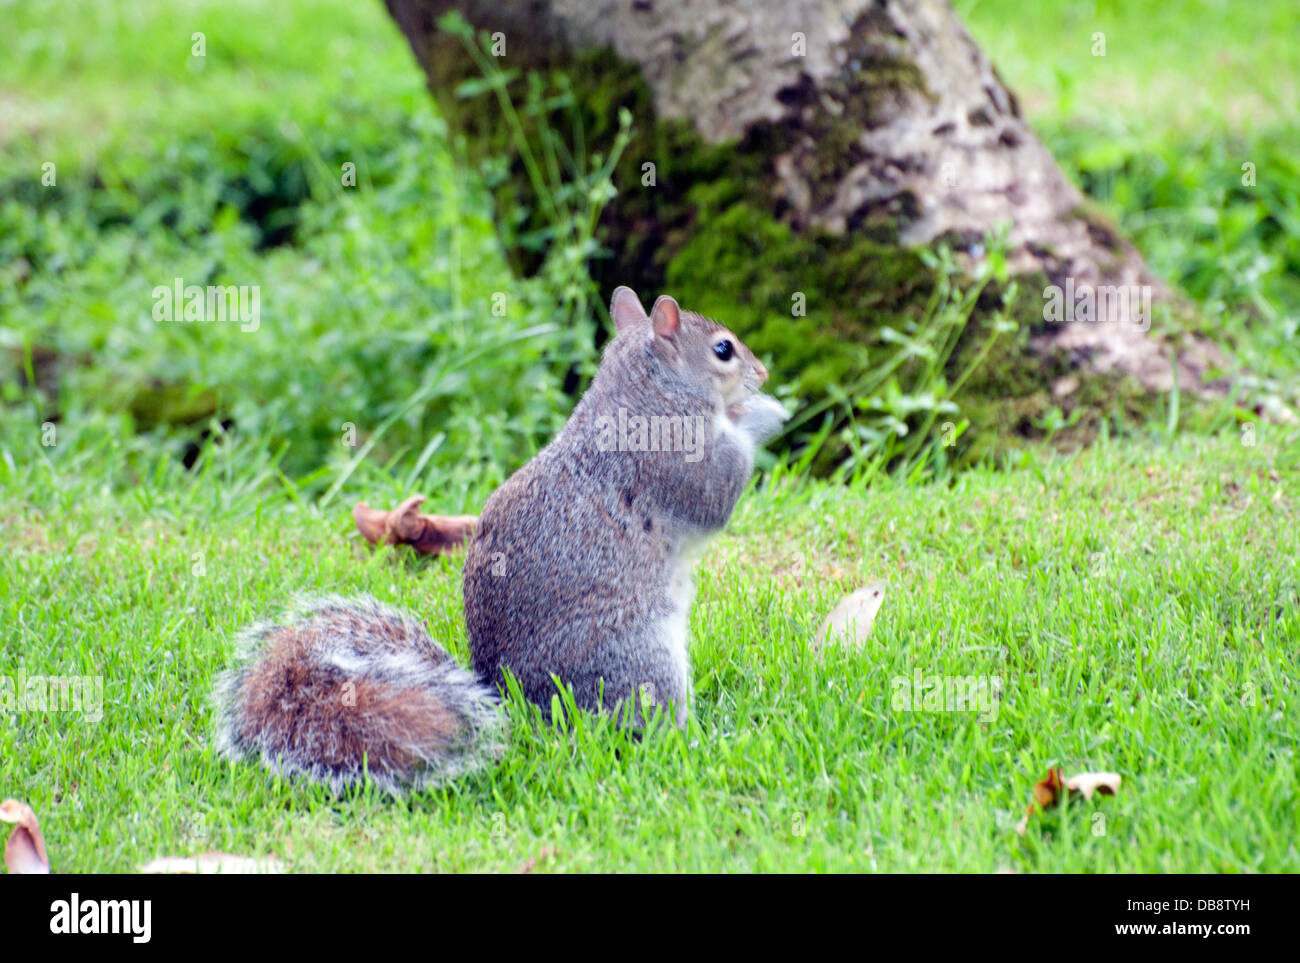 squirrels playing stockfotos squirrels playing bilder alamy. Black Bedroom Furniture Sets. Home Design Ideas